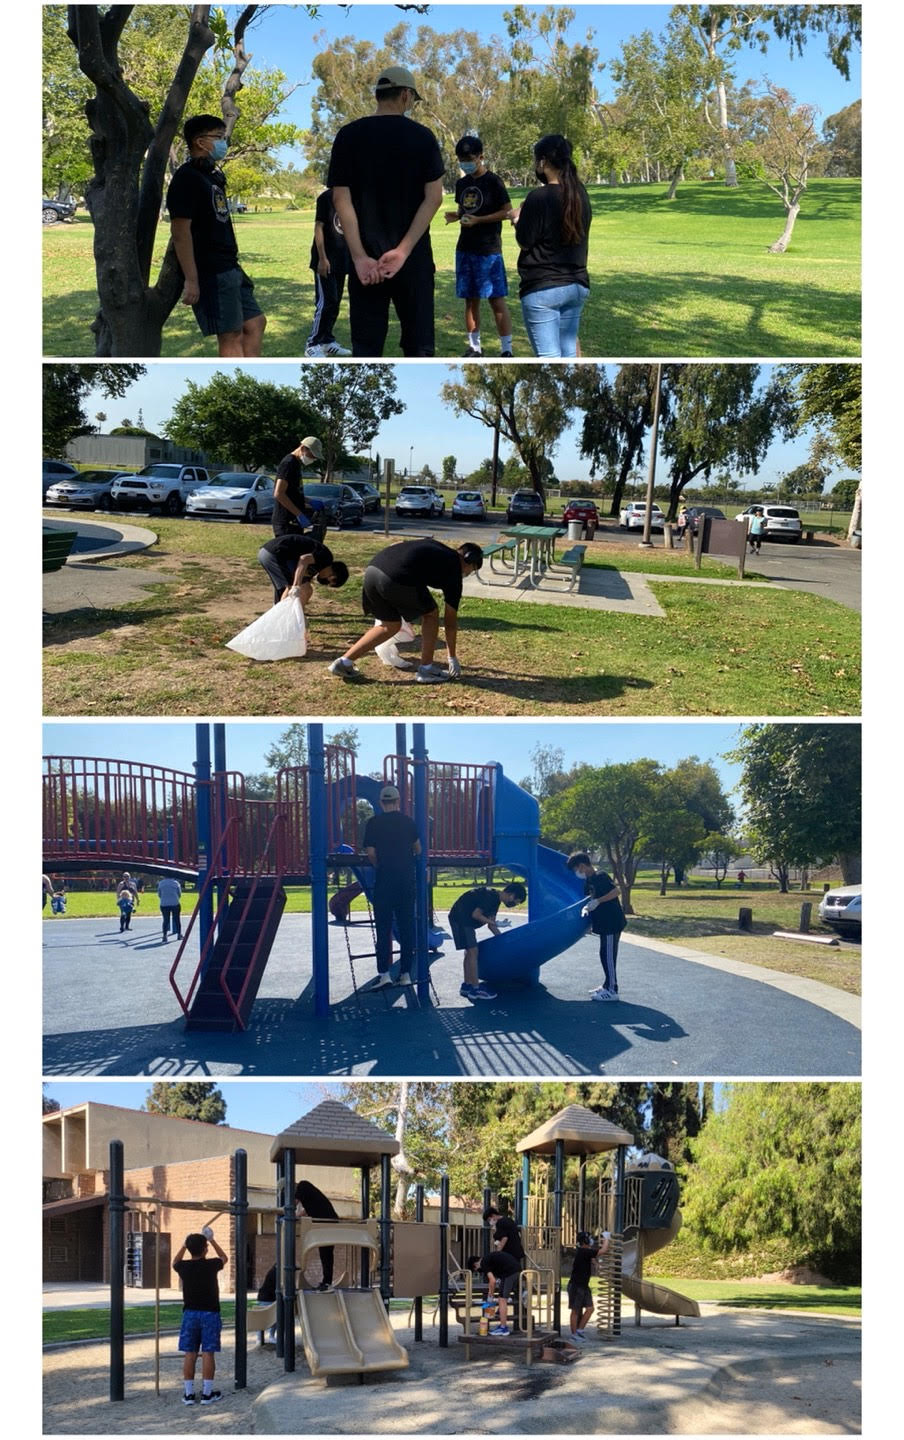 Hand in Hand members clean up trash and sanitize playgrounds at Tri-City Park, Placentia